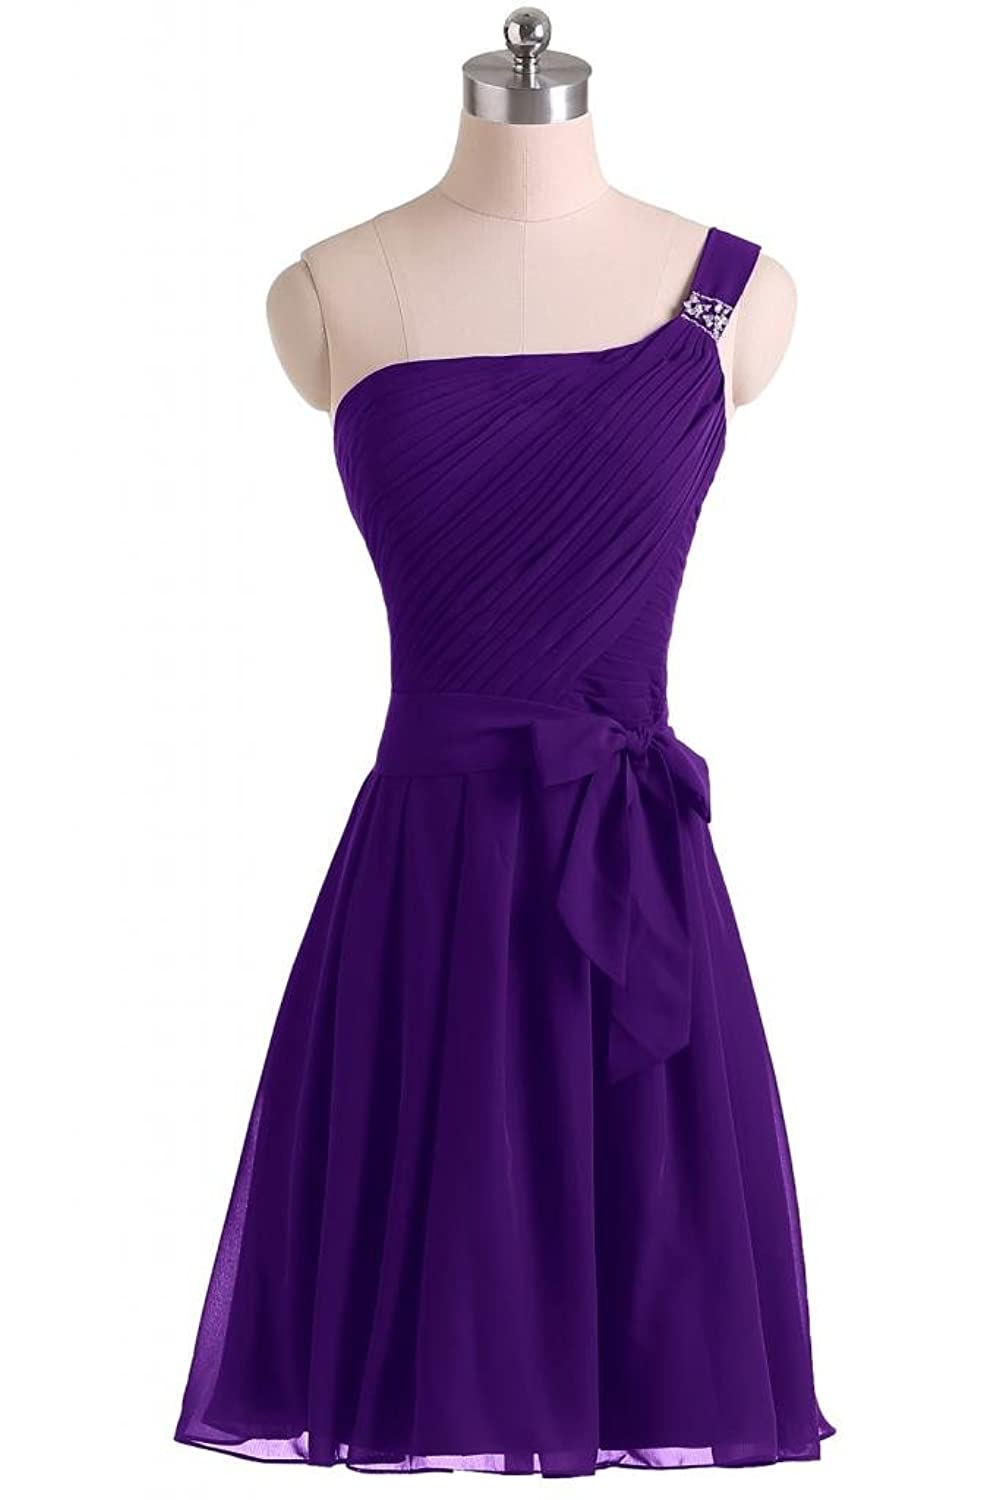 Sunvary Woman Simple Cocktail Homecoming Dresses One Shoulder Chiffon Bridesmaid Gowns